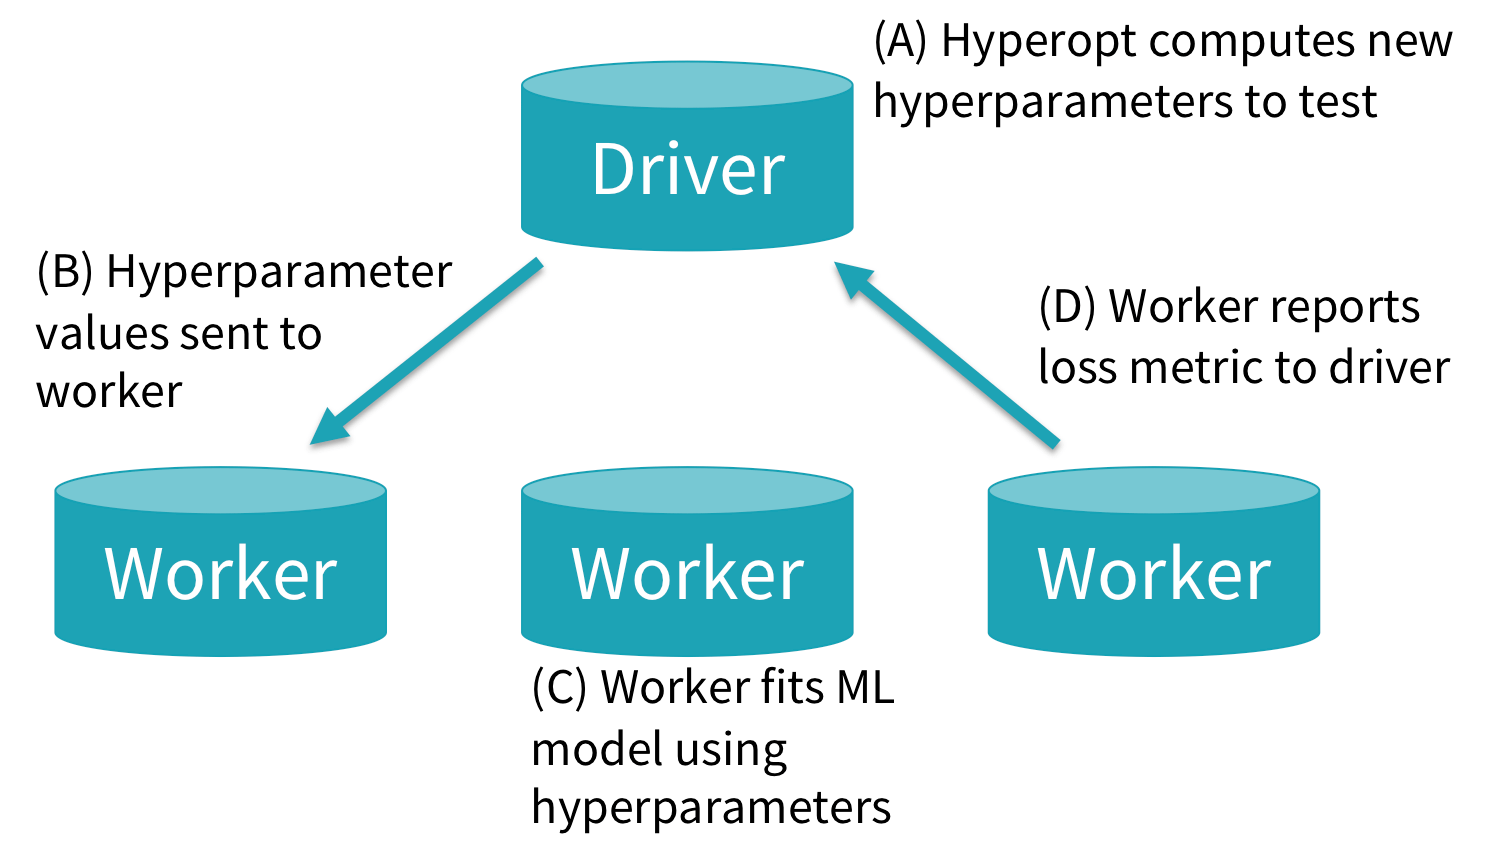 How new hyperparameter settings are tested and passed to SparkTrials using Hyperopt